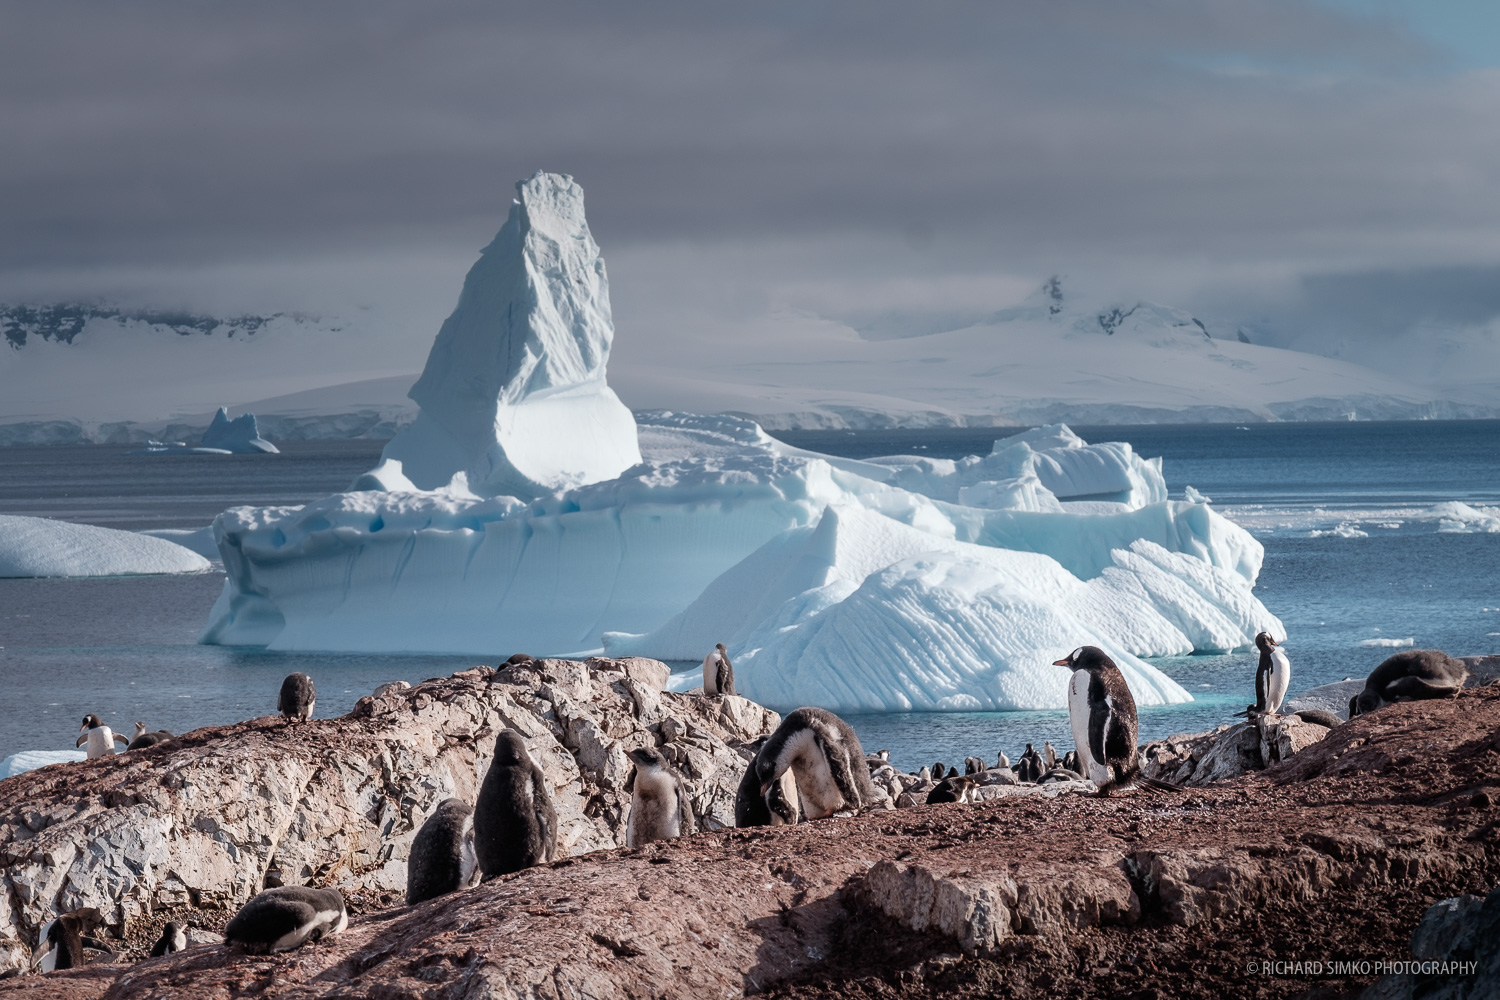 This is one of the biggest colony of gentoo penguins who usually prefer smaller ones. The magnificent iceberg frames the scene giving it a nice color contrast.